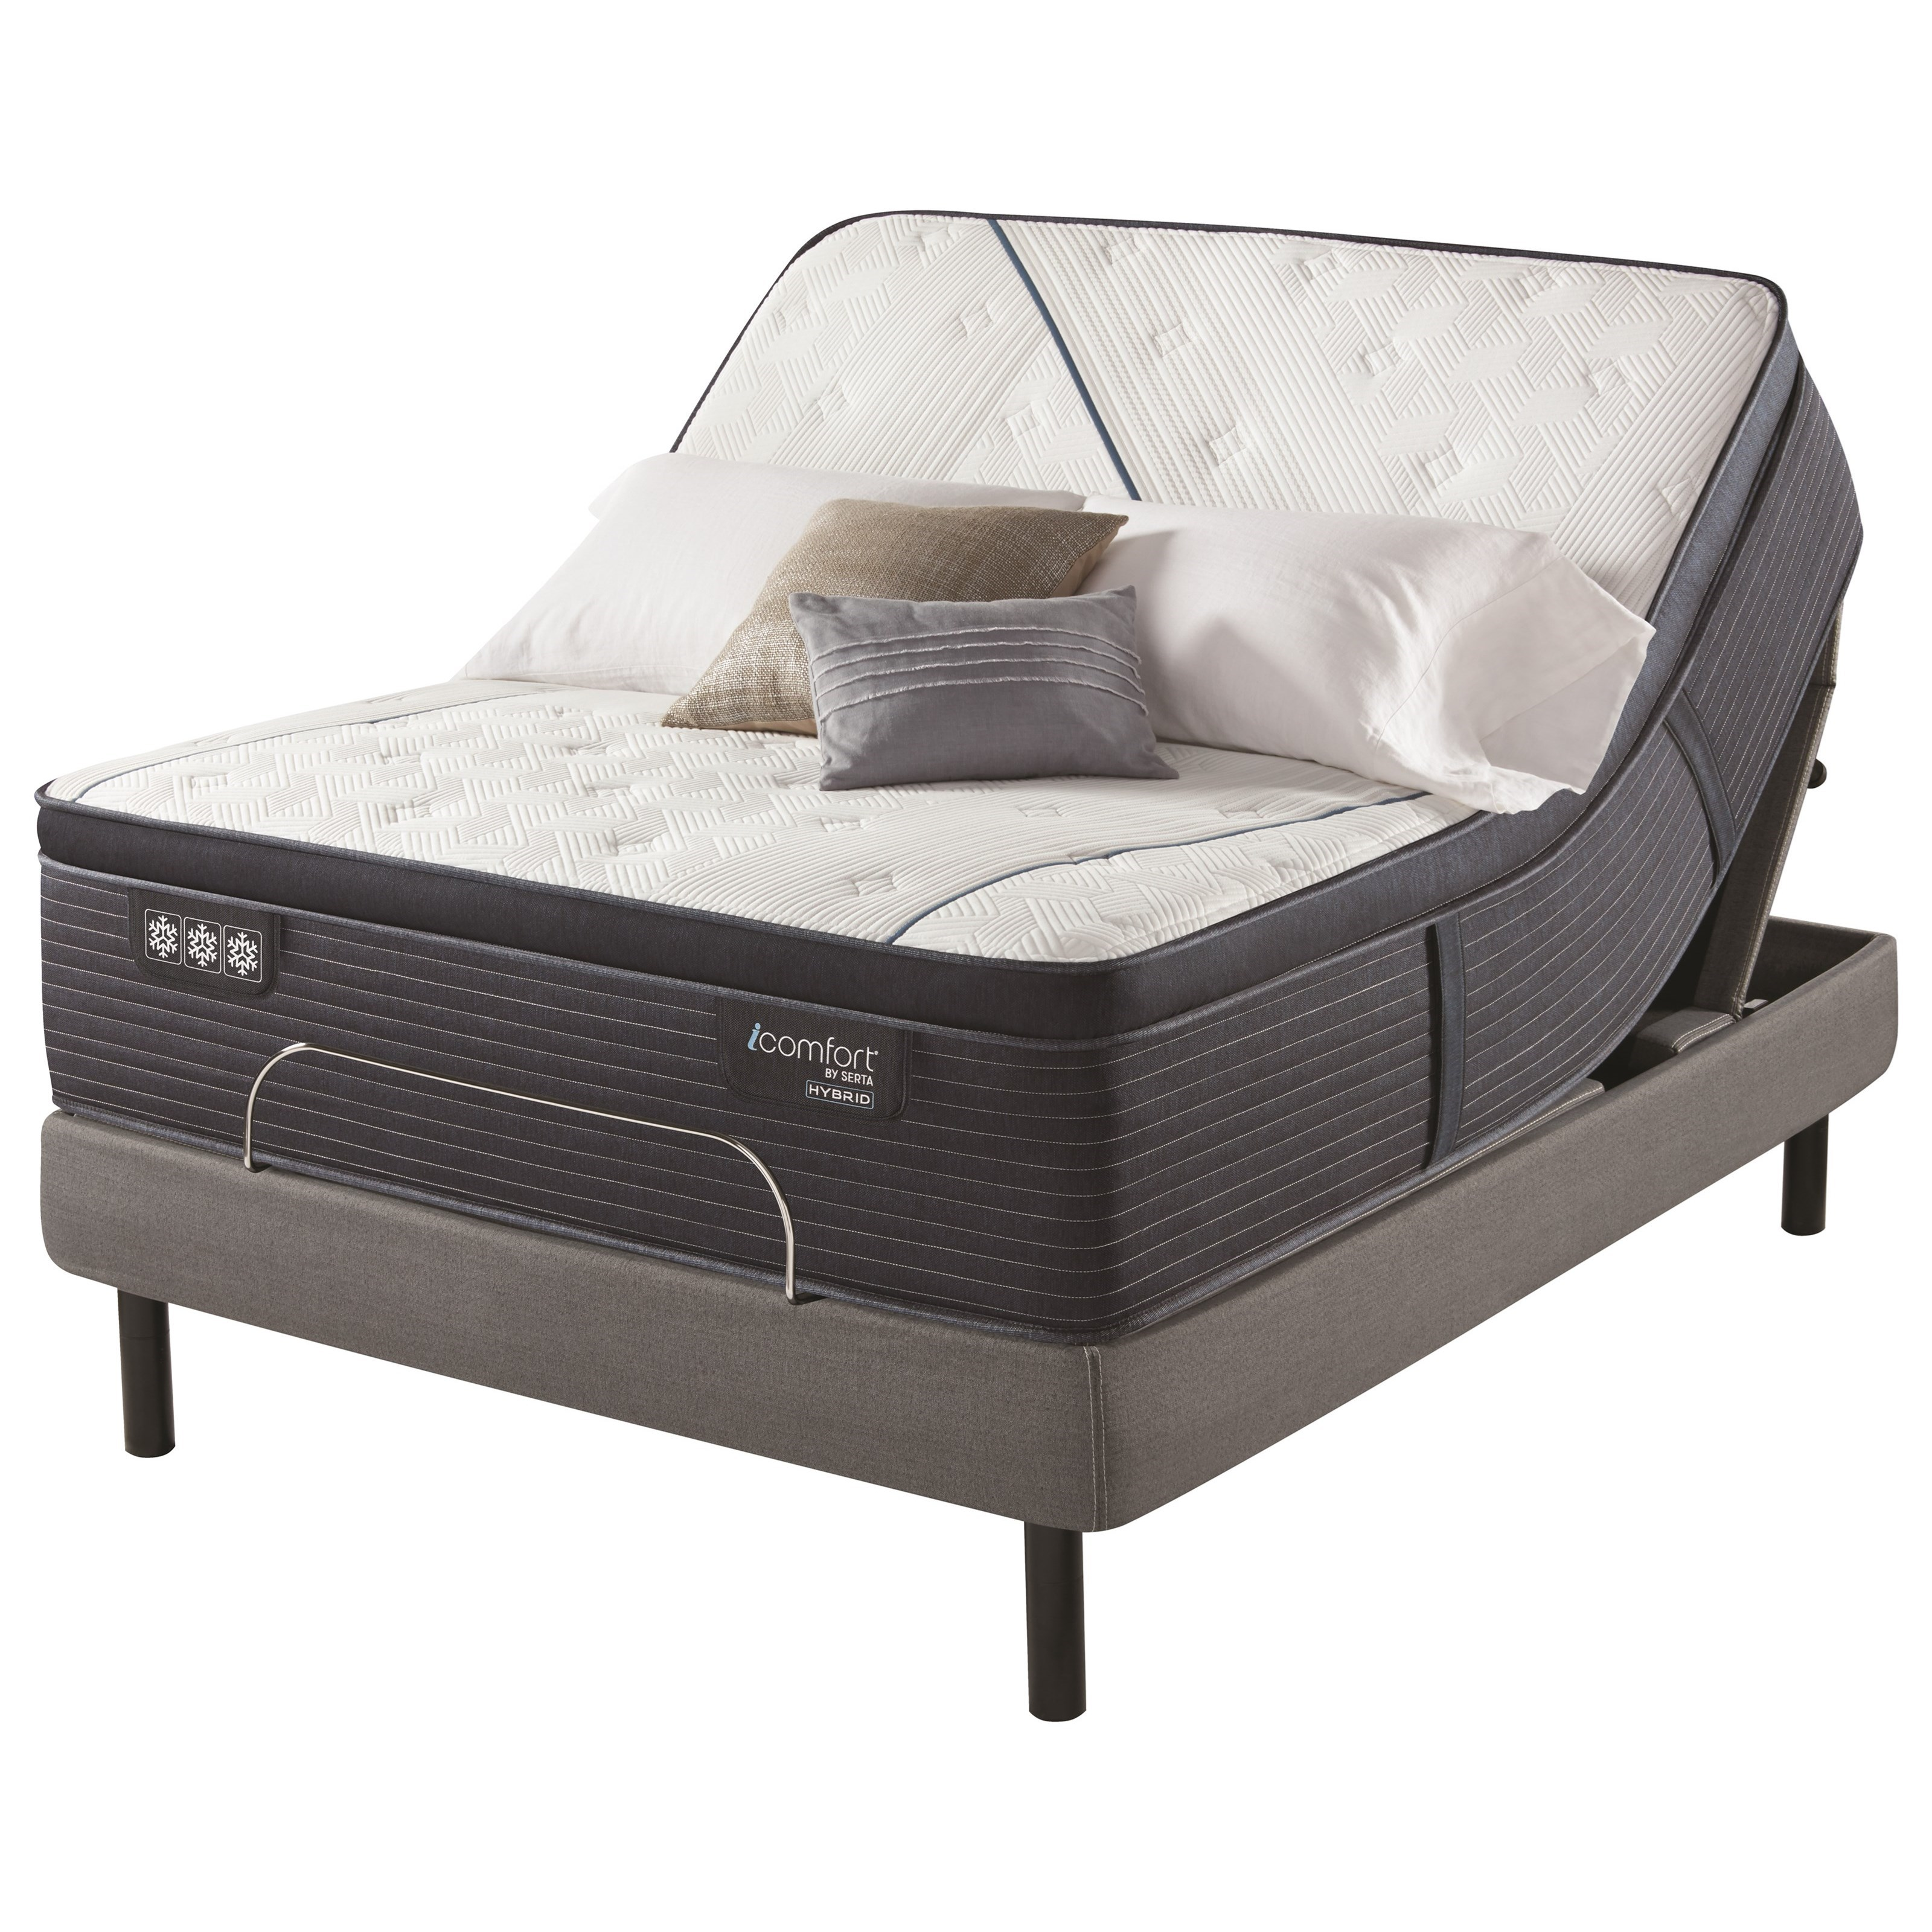 "CF3000 Quilted Hybrid II Plush PT Split King 14 3/4"" Plush PT Hybrid Adj Set by Serta at Prime Brothers Furniture"